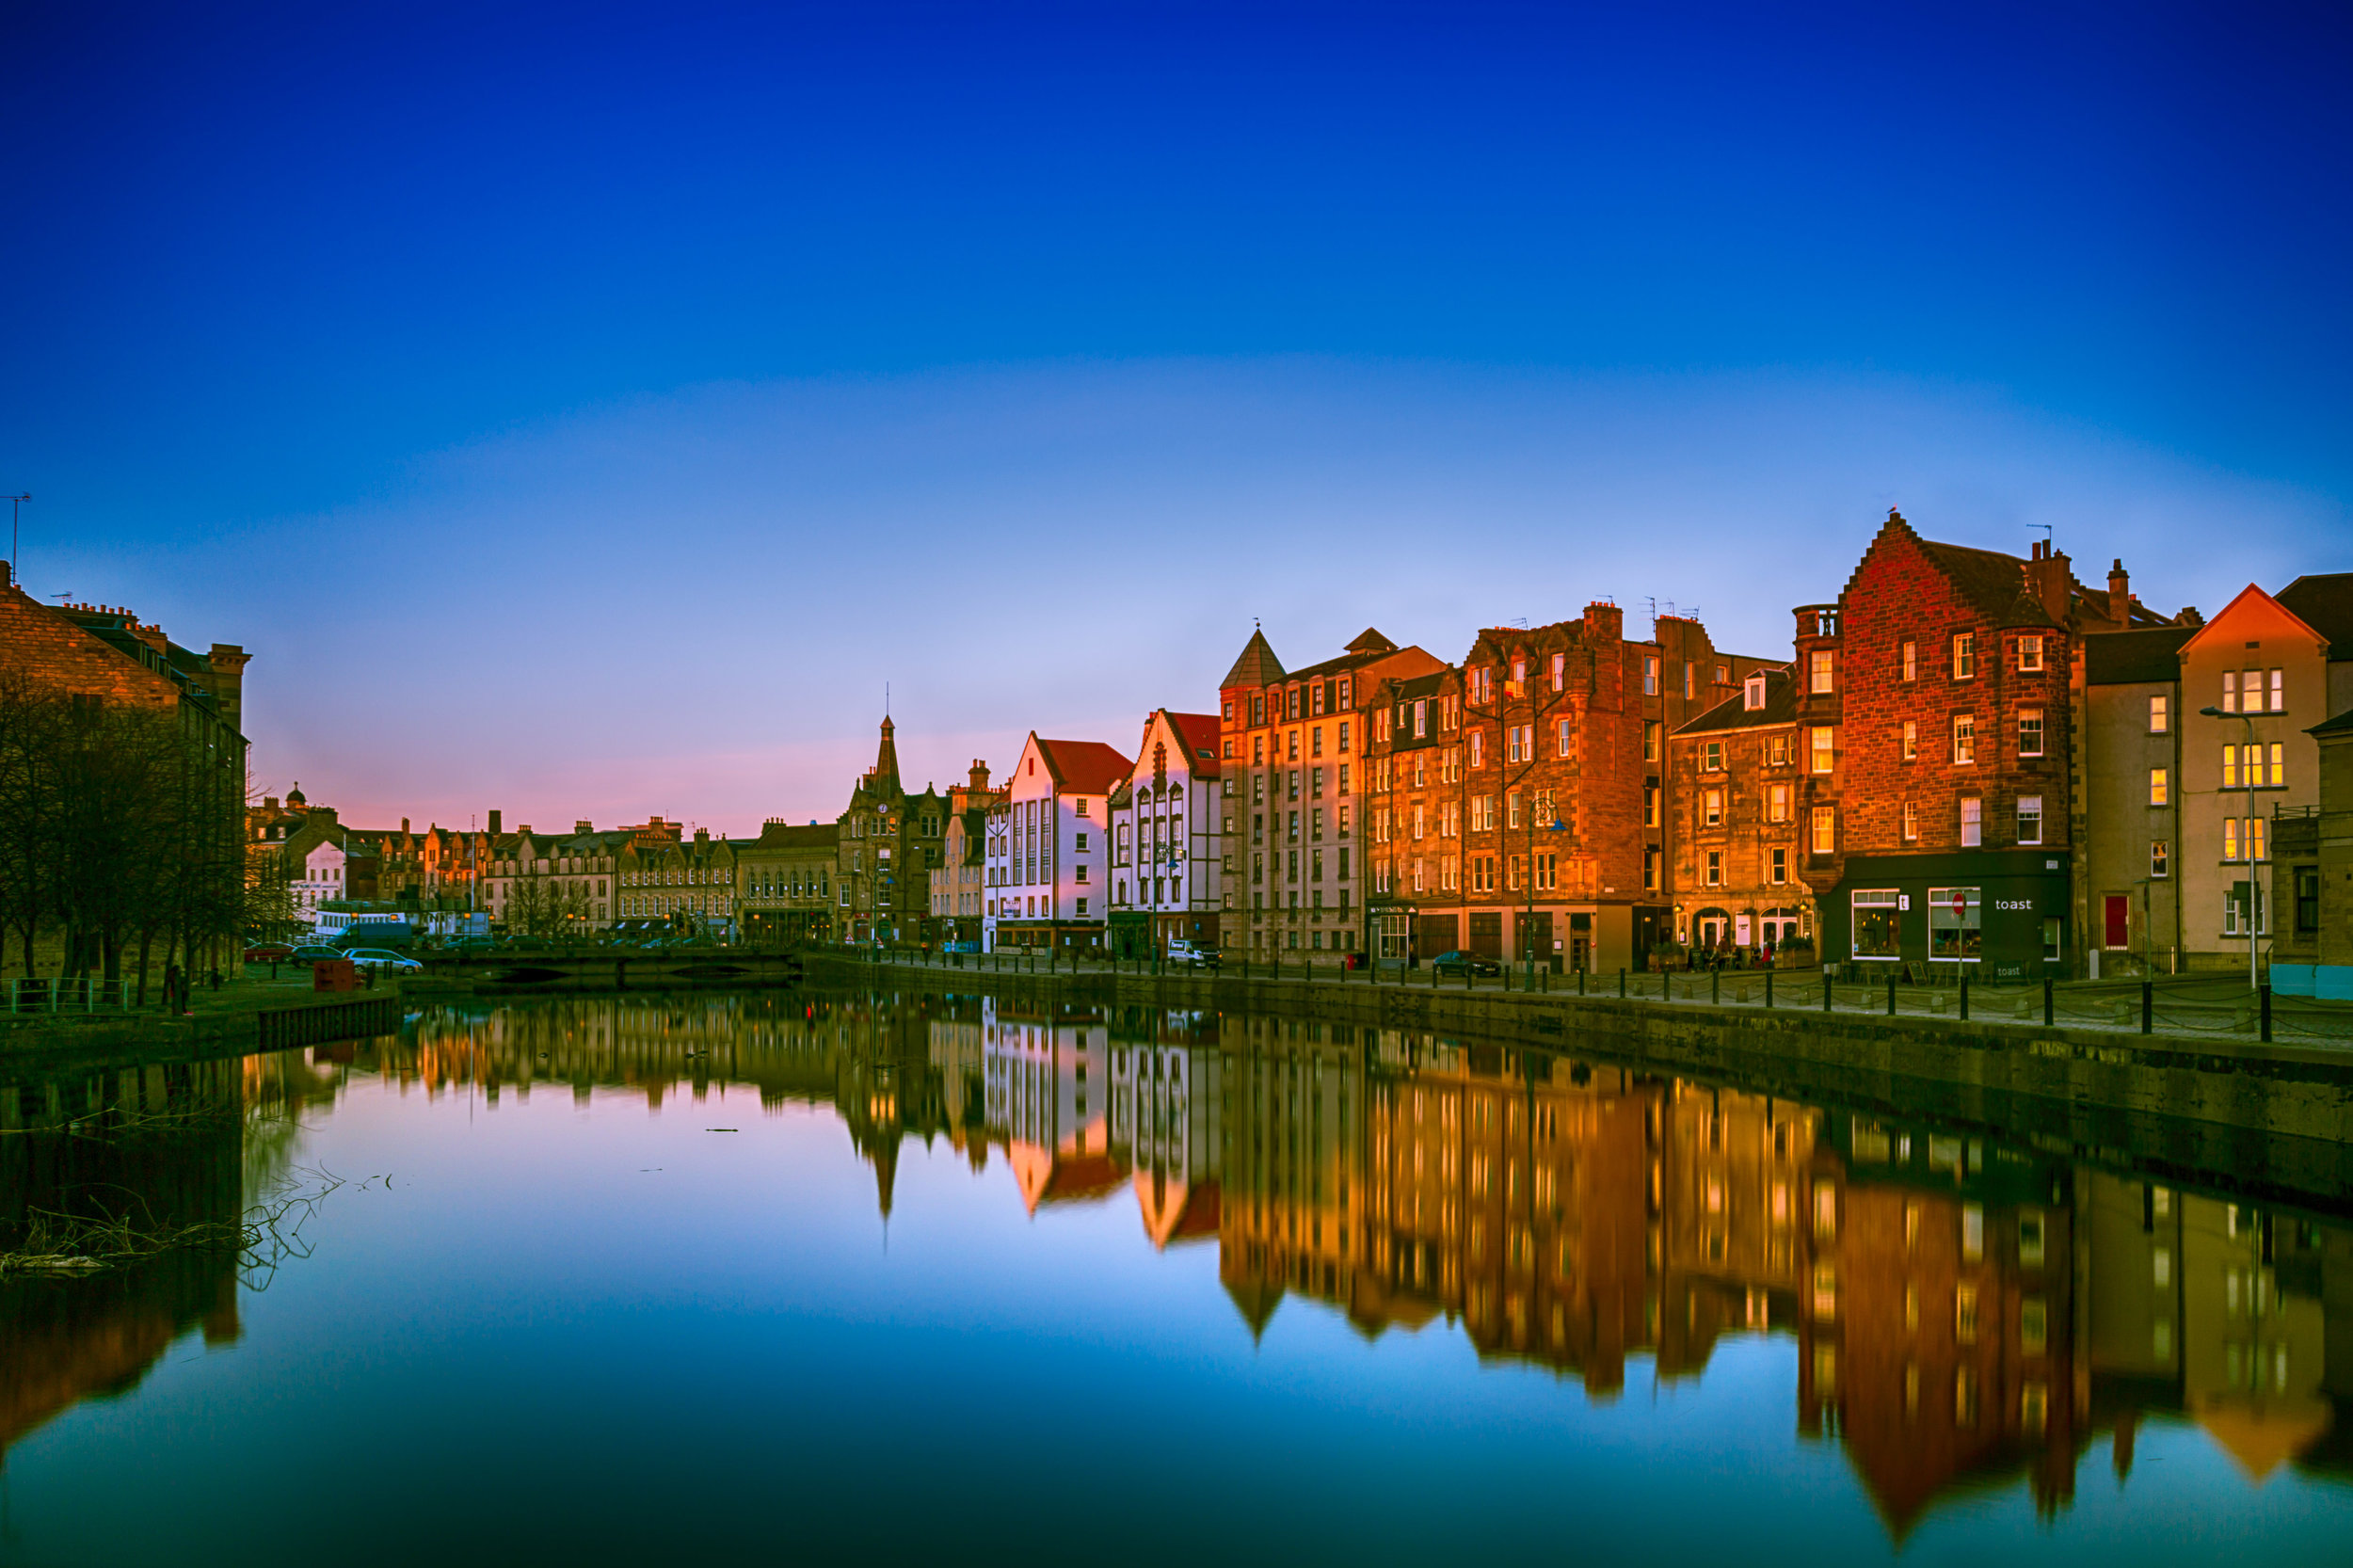 Leith Reflections